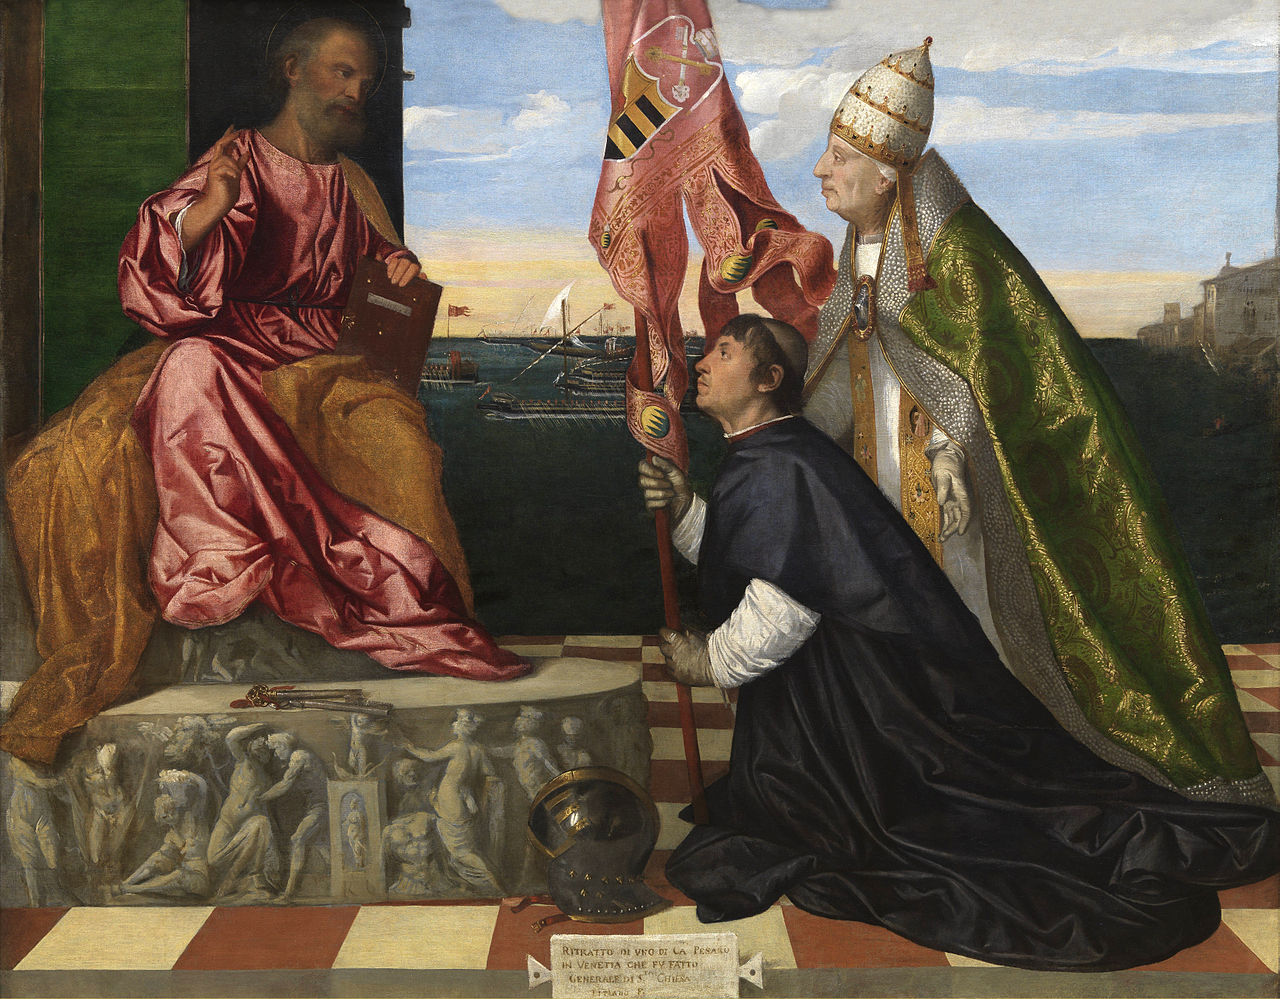 Jacopo_Pesaro_presented_to_St._Peter_by_Pope_Alexander_VI_-_Tizian-2.jpg